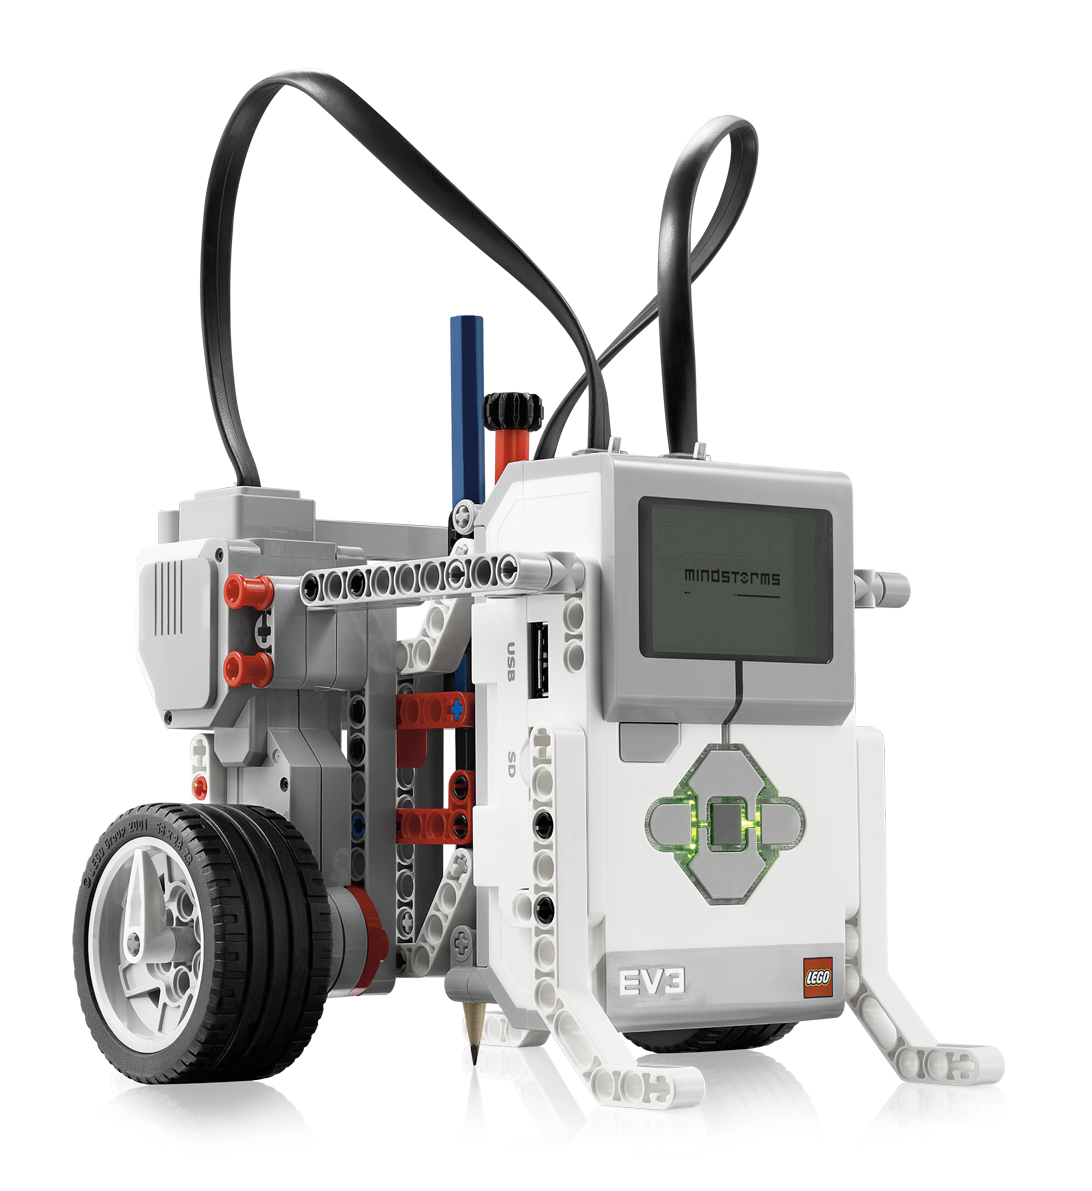 LEGO® MINDSTORMS® Education EV3 and FTC | FIRST Tech Challenge